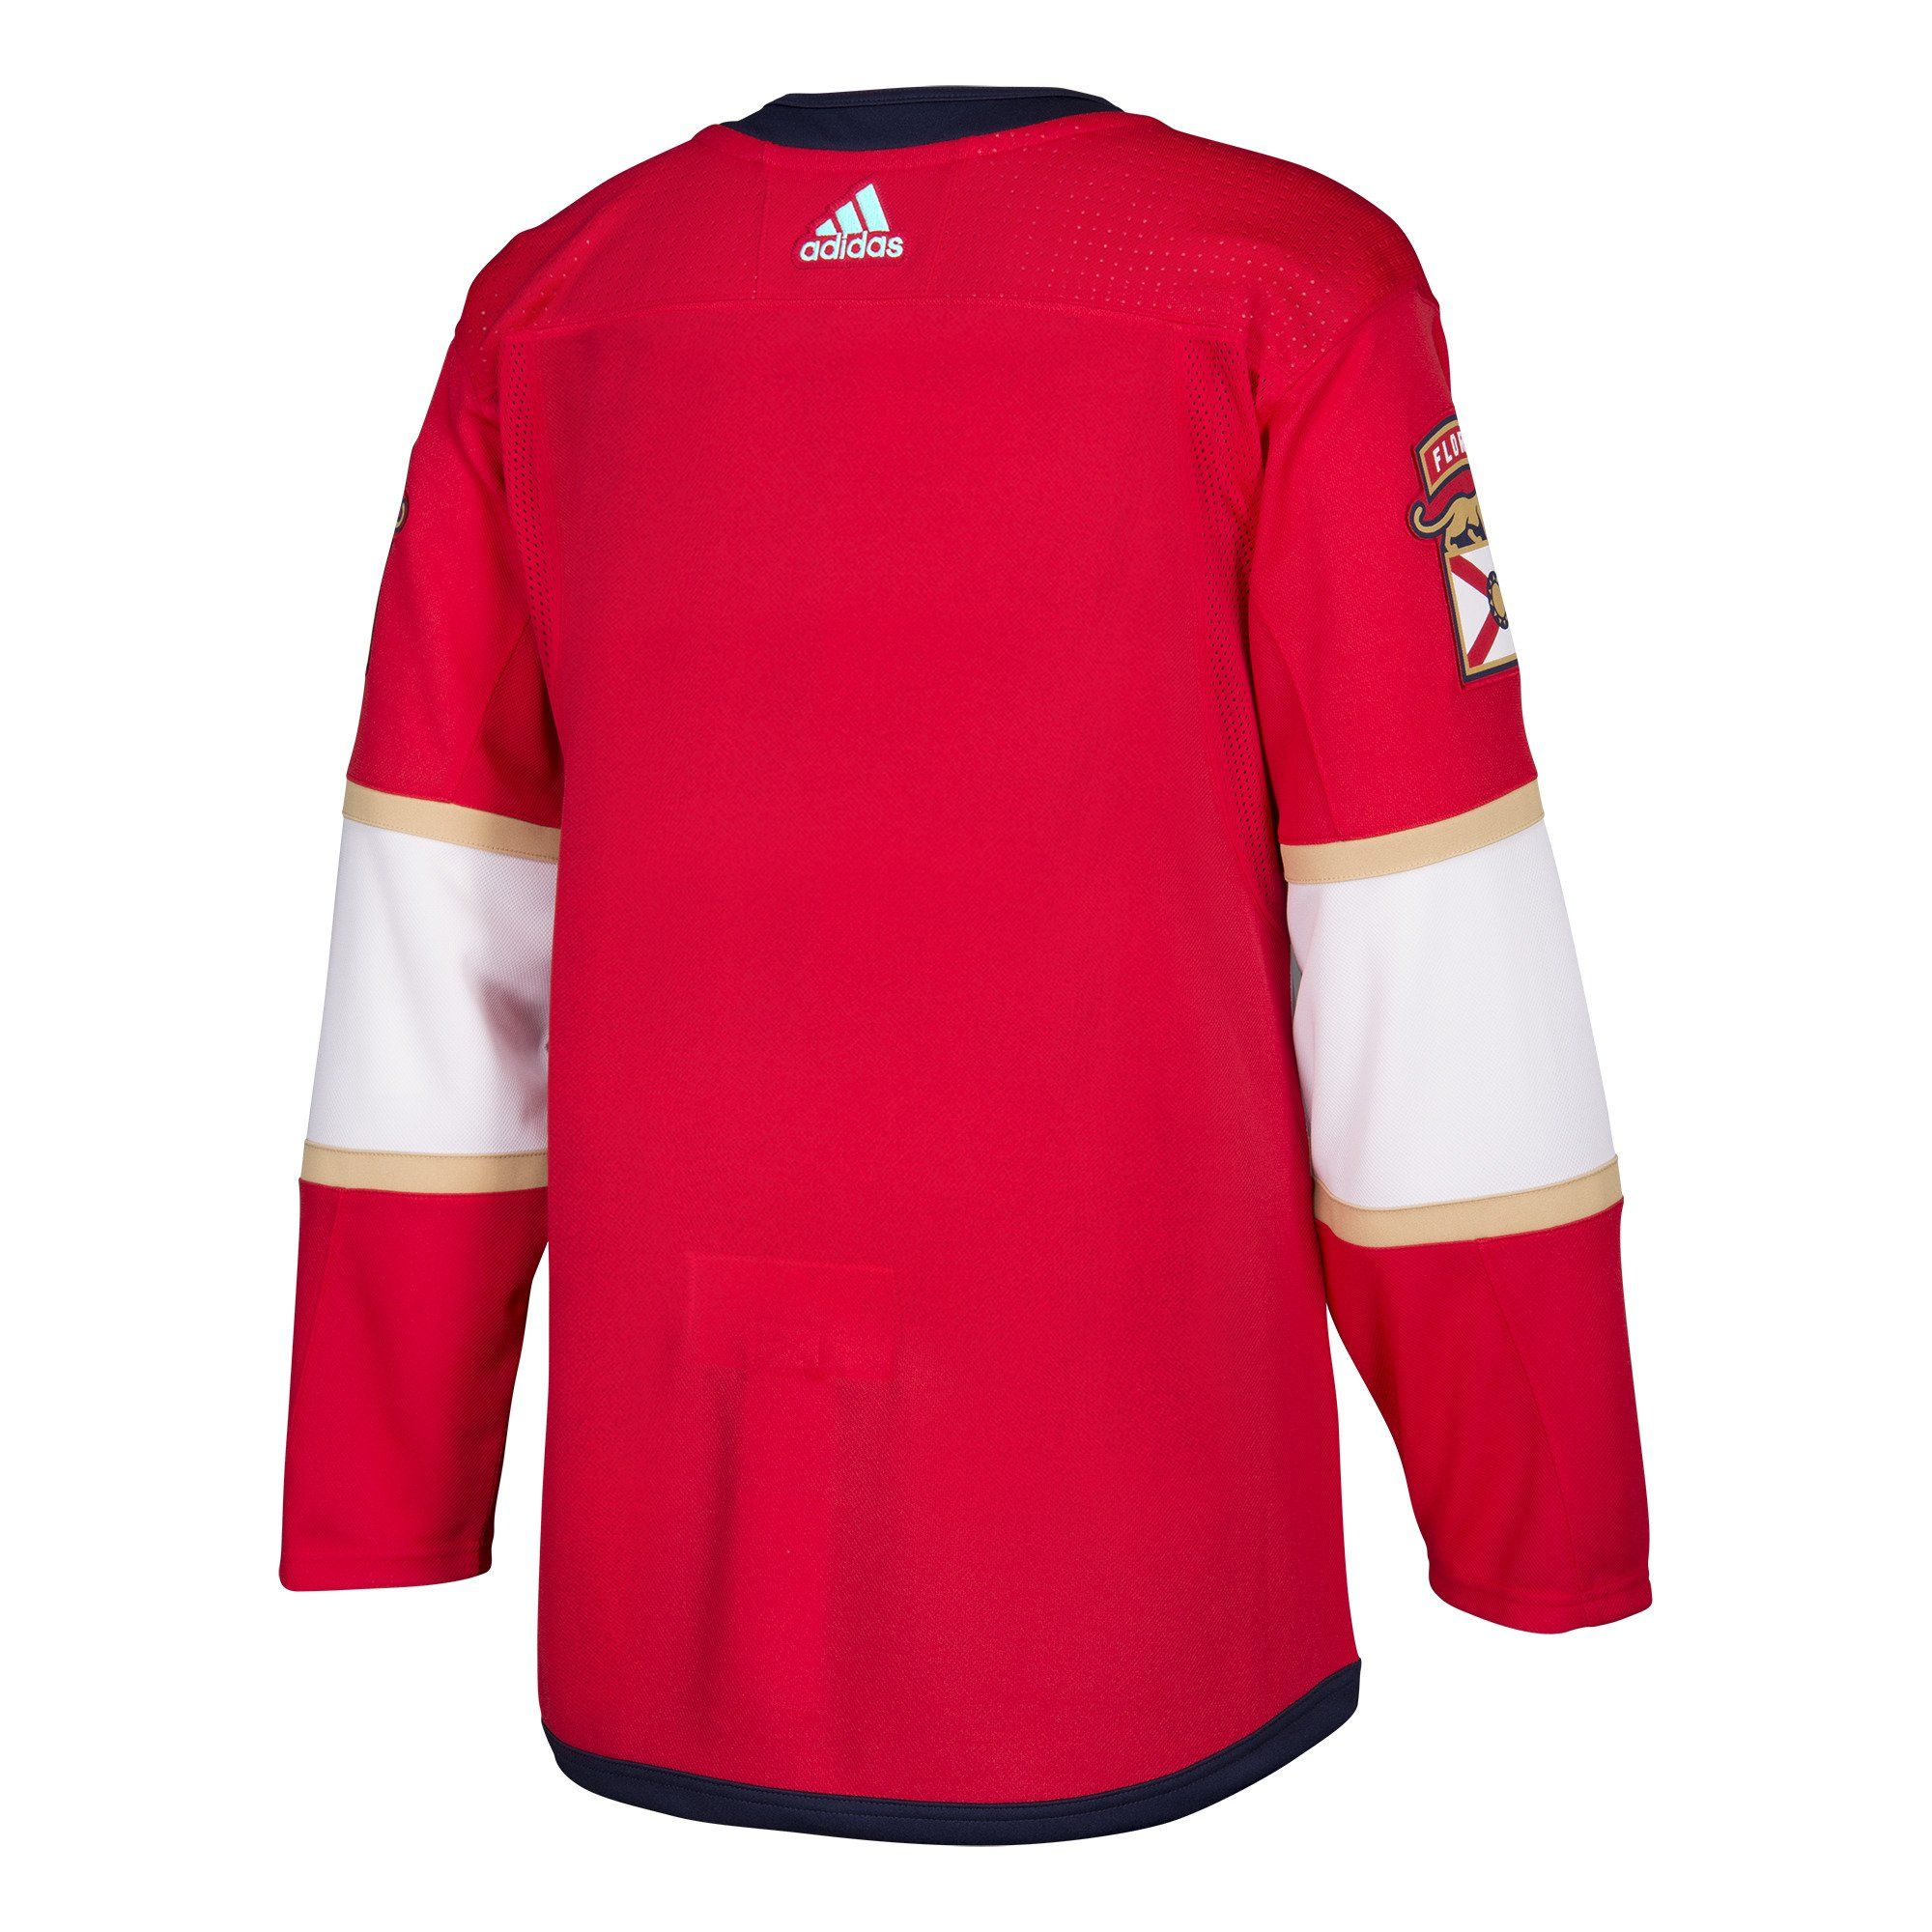 Florida panthers adidas mens red authentic jersey with